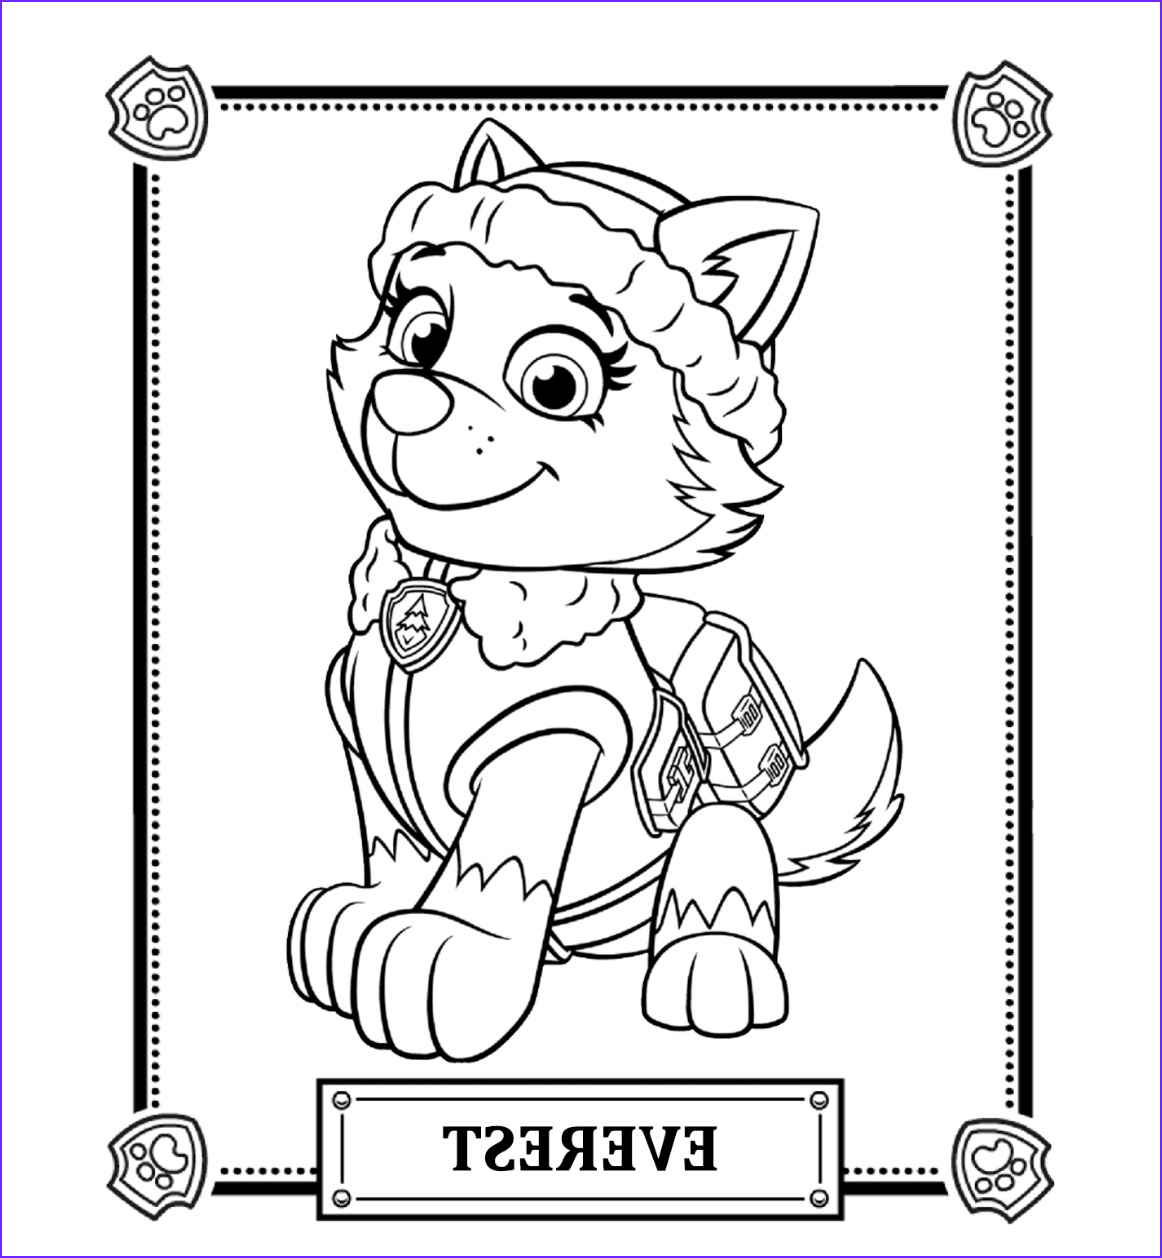 Paw Patrol Coloring Book Beautiful Collection Paw Patrol Coloring Pages Best Coloring Pages for Kids